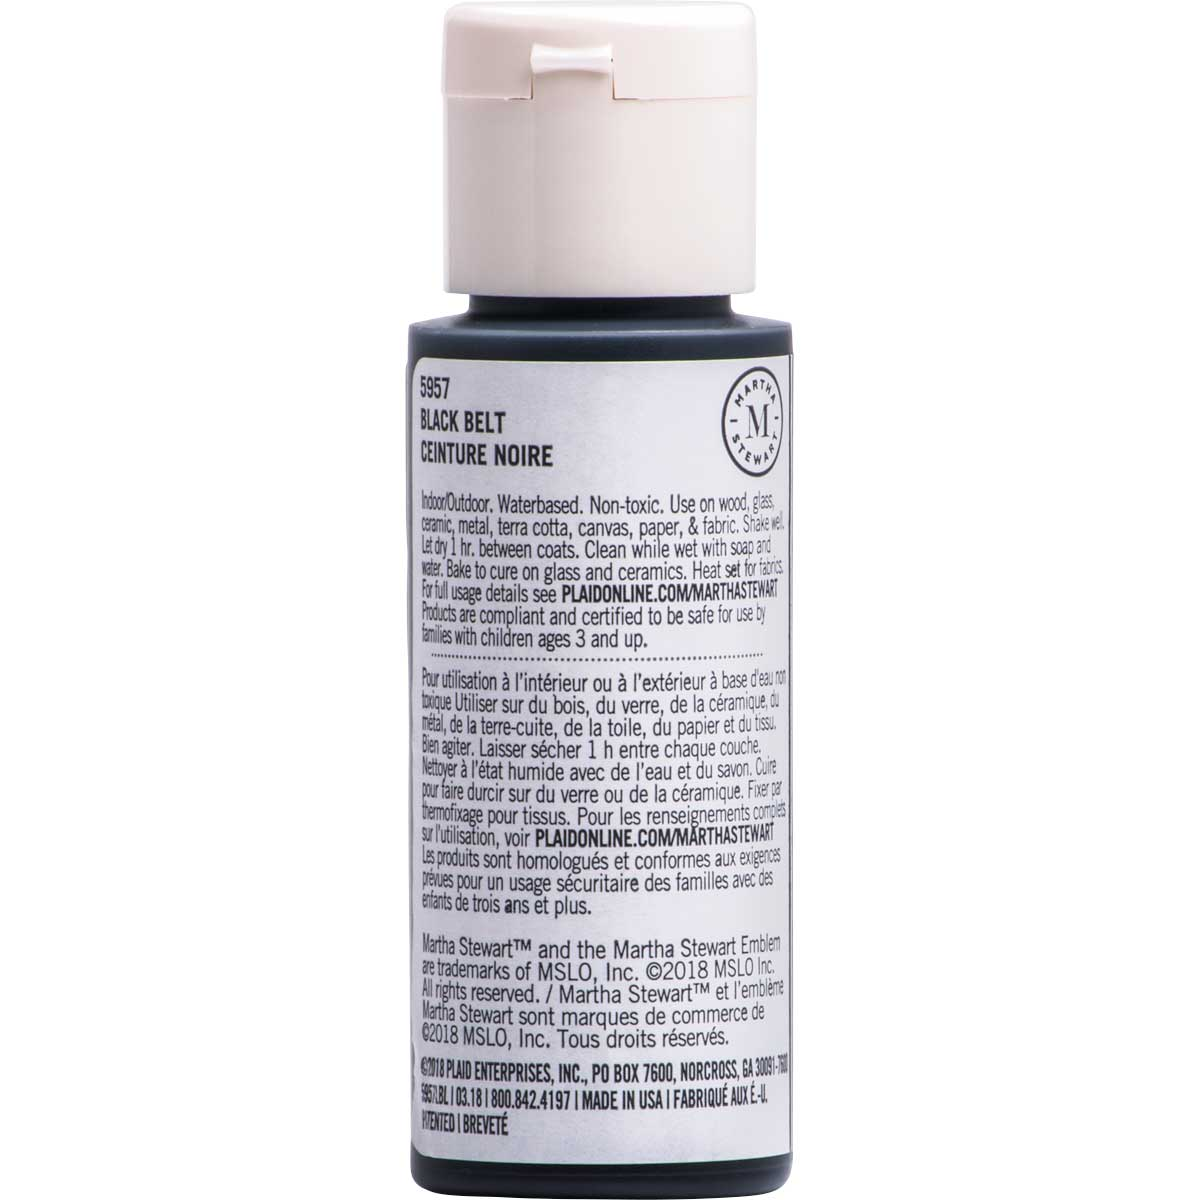 Martha Stewart ® Multi-Surface Satin Acrylic Craft Paint CPSIA - Black Belt, 2 oz. - 5957